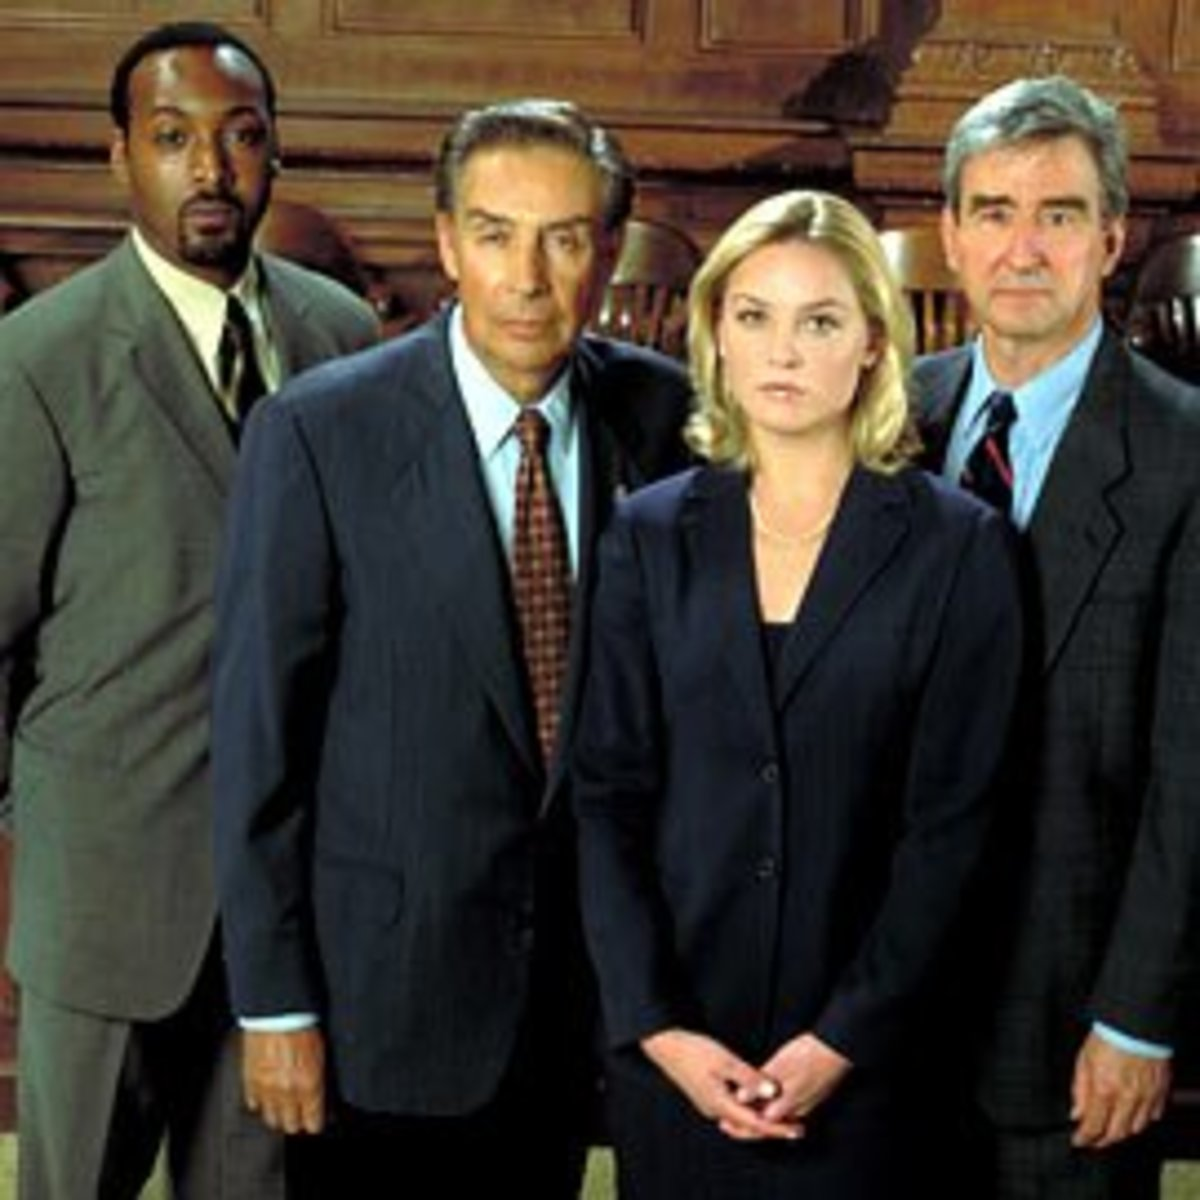 One of the best legal teams on TV?